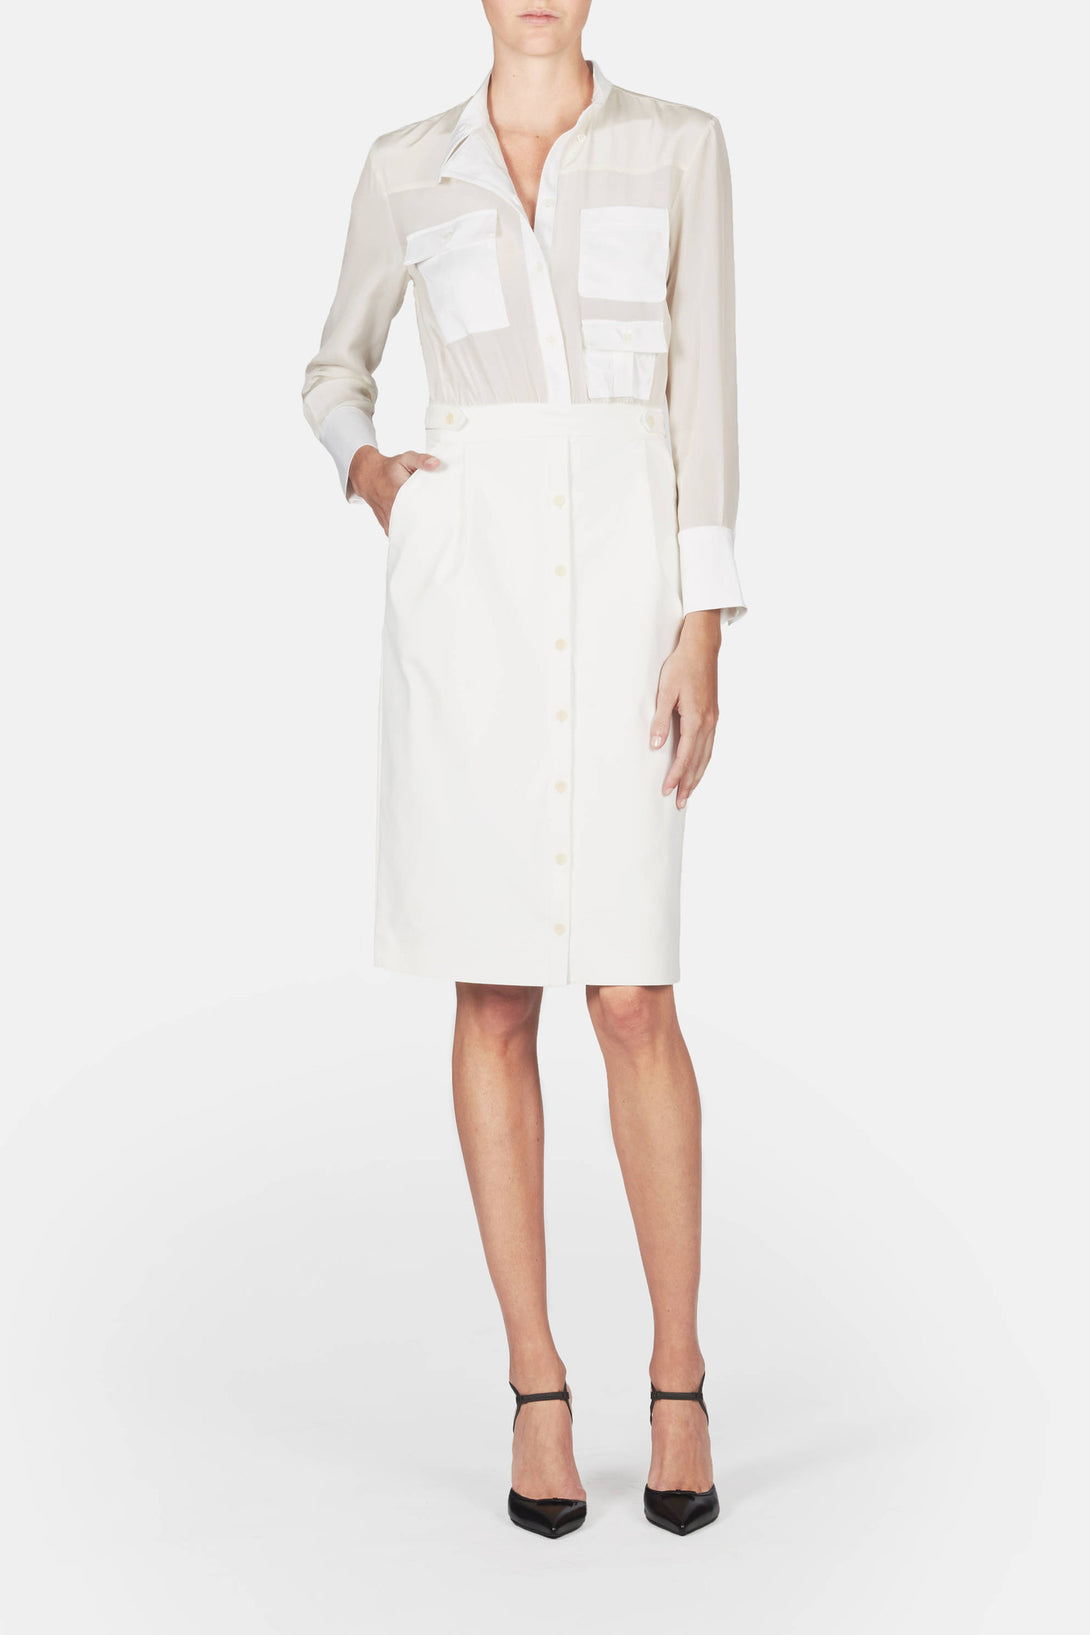 Ramona Dress - White